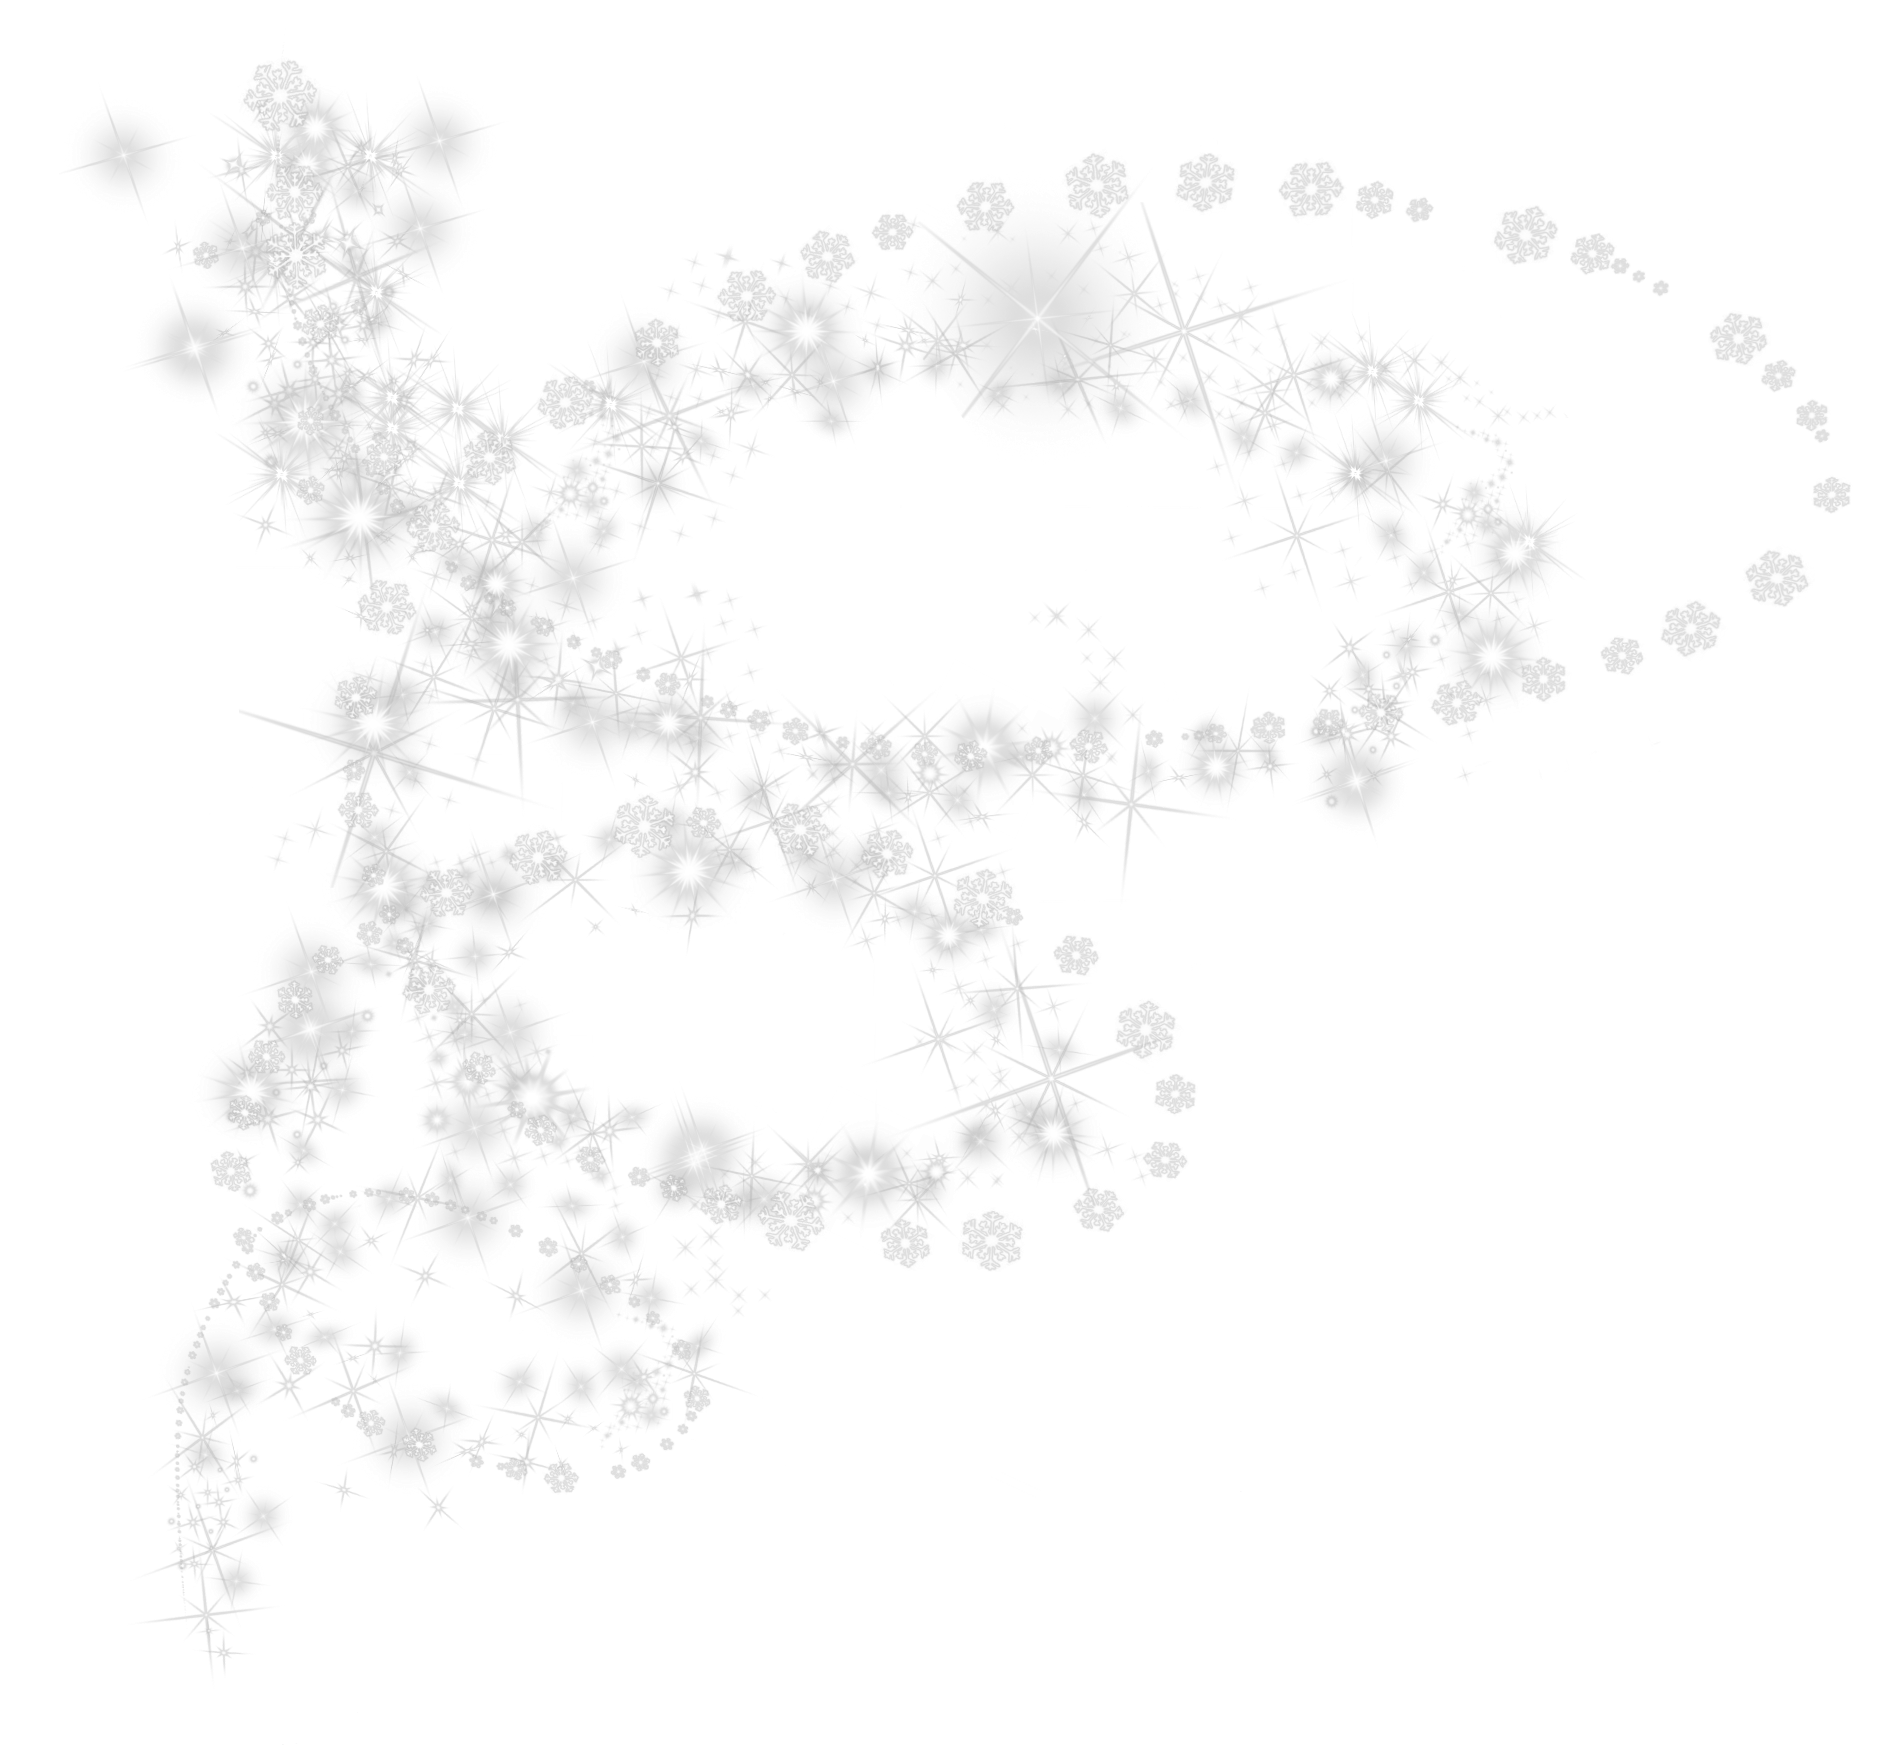 Snowflakes Falling Png 34490 Free Icons And Png Backgrounds